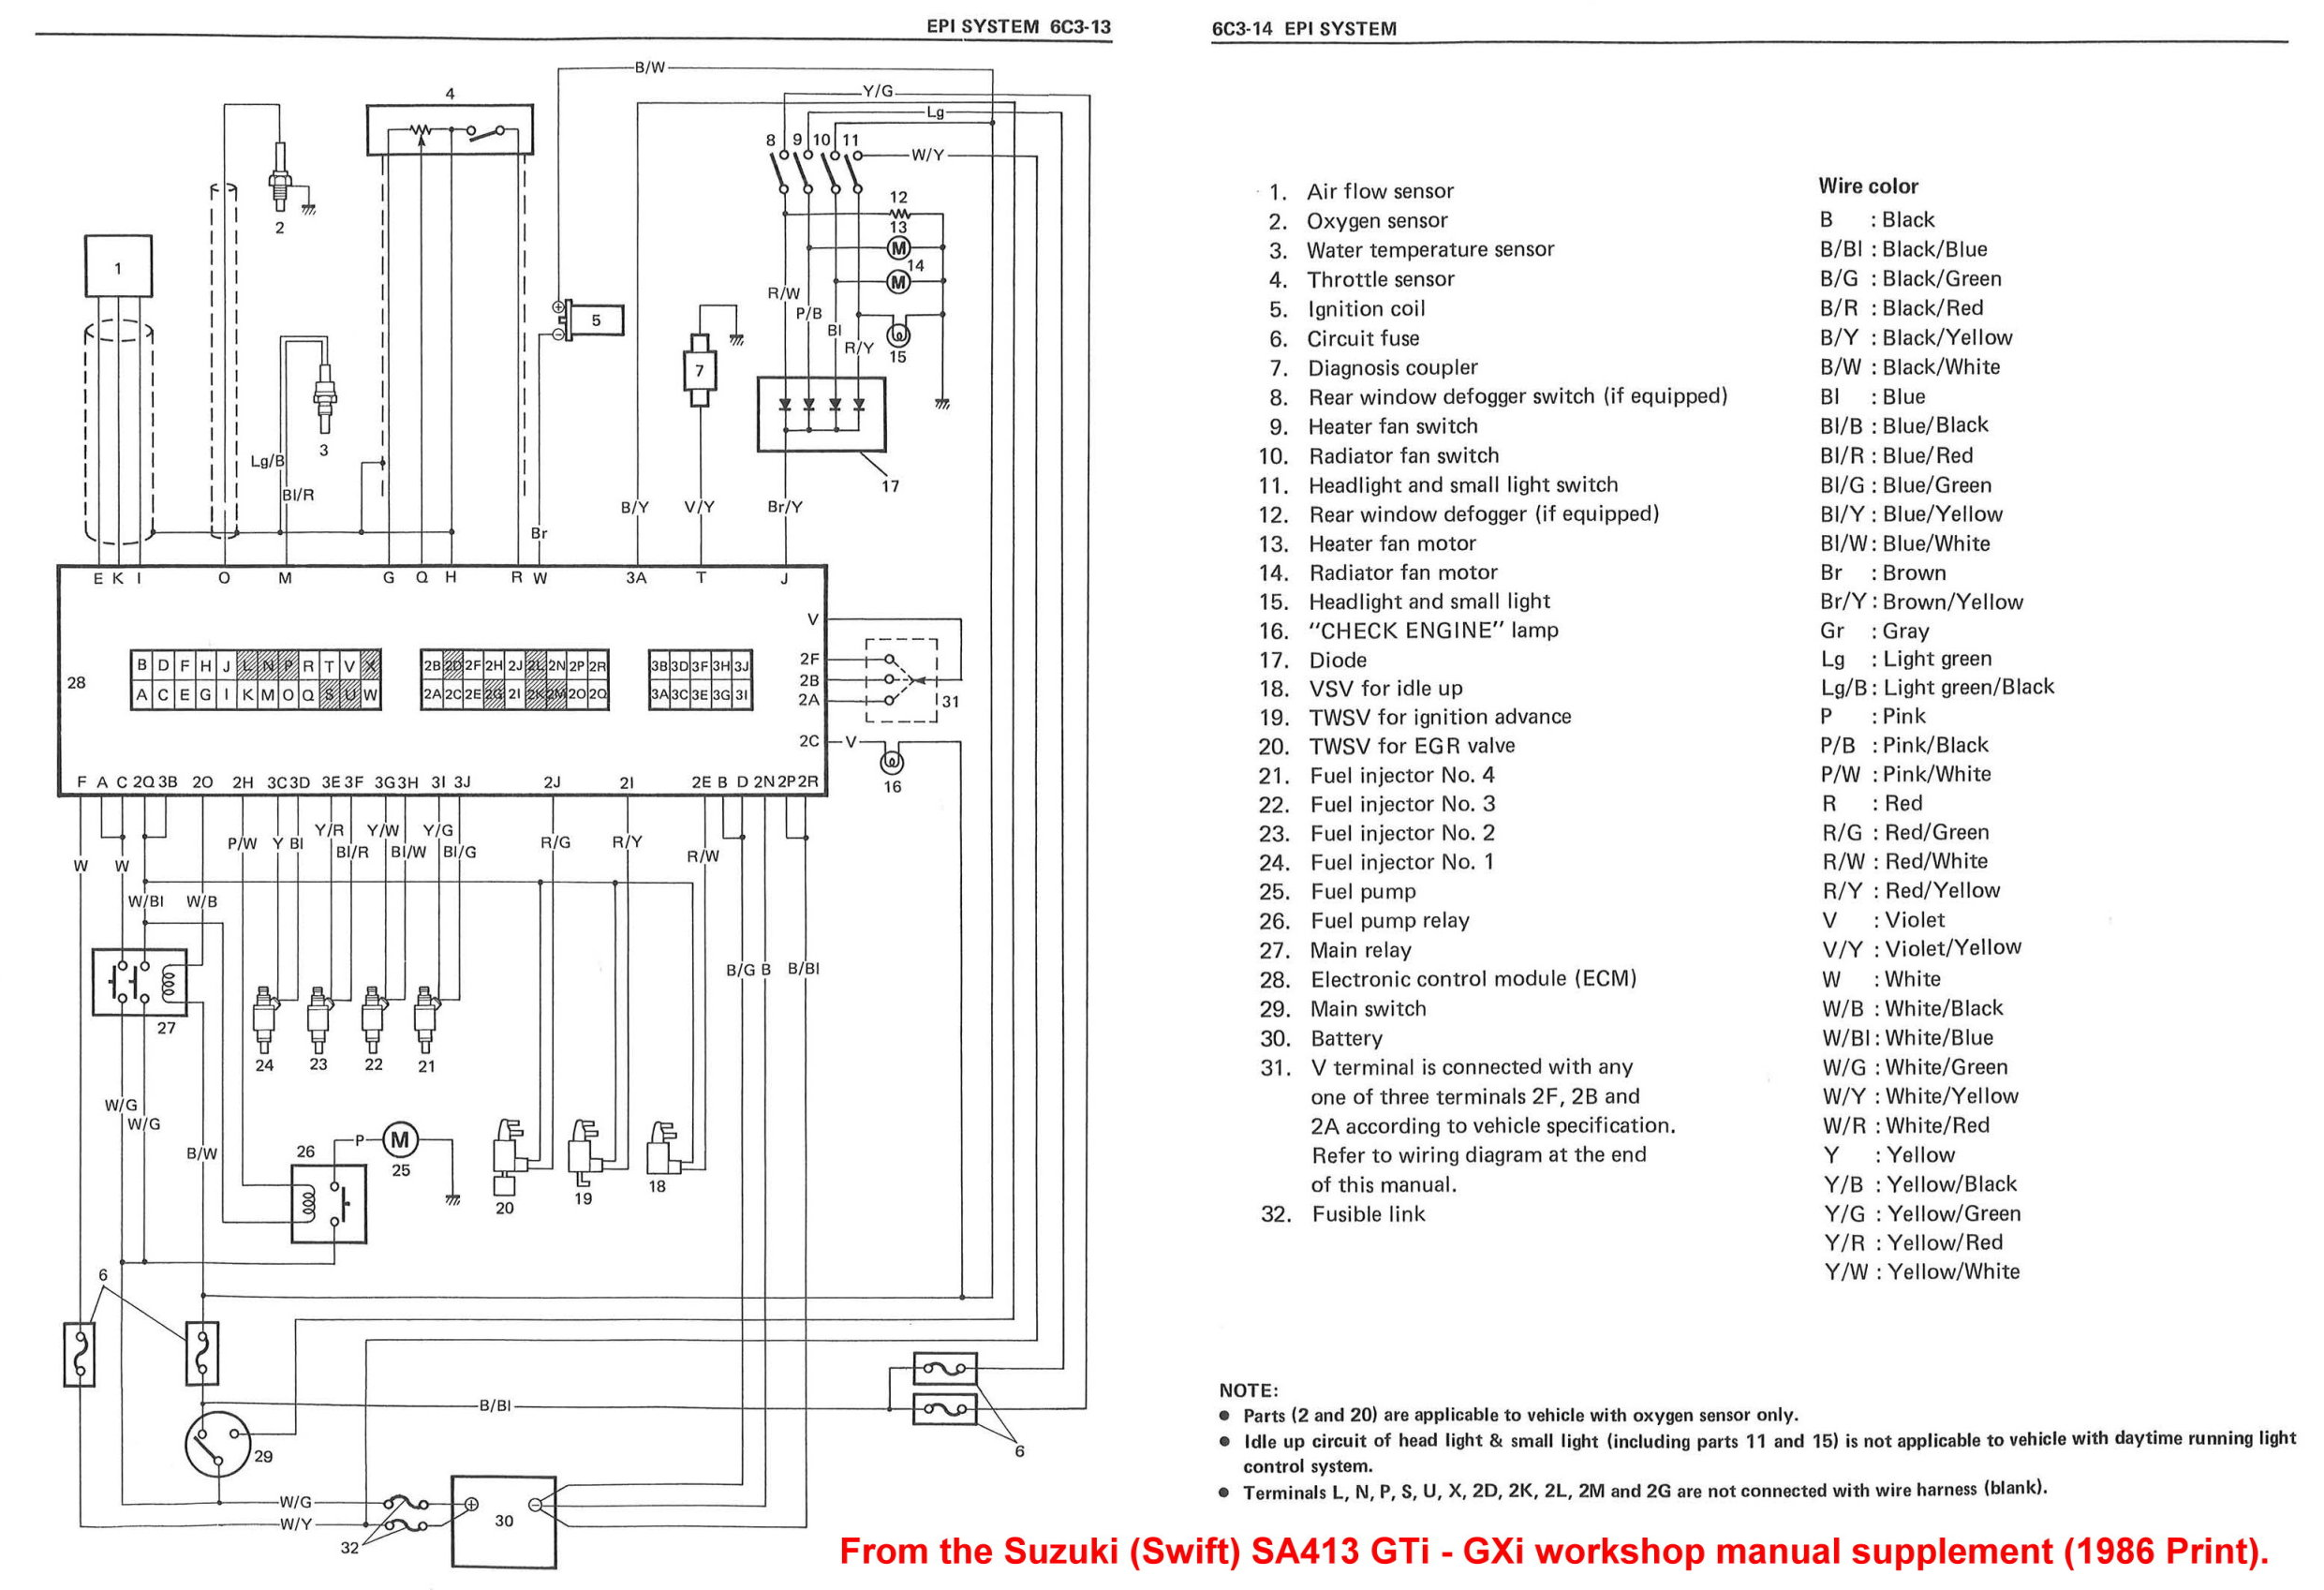 Wiring Diagram For Gti Swift